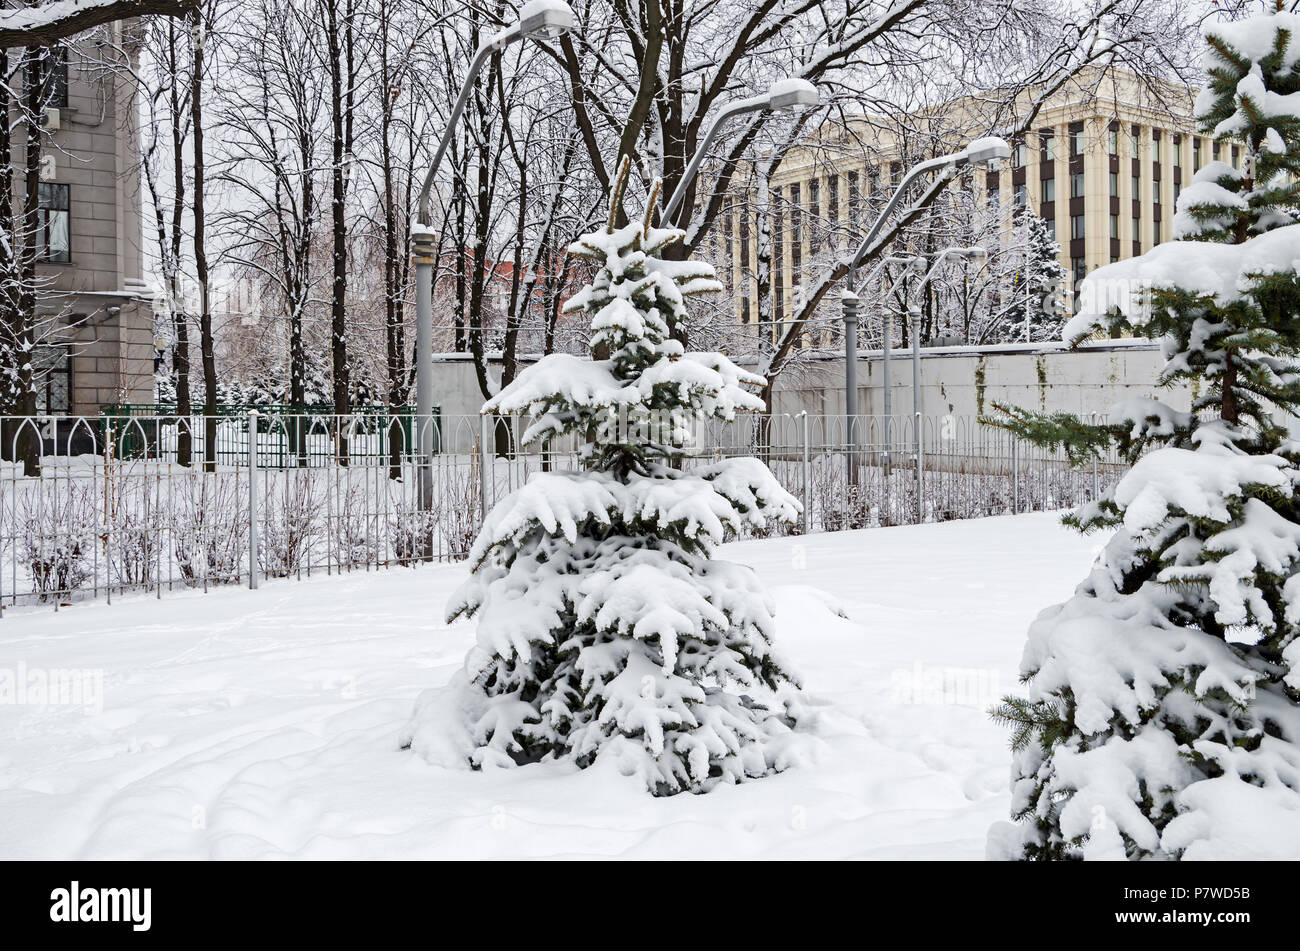 Cold January snow covered the young spruces in the city park on a background of administrative buildings - Stock Image